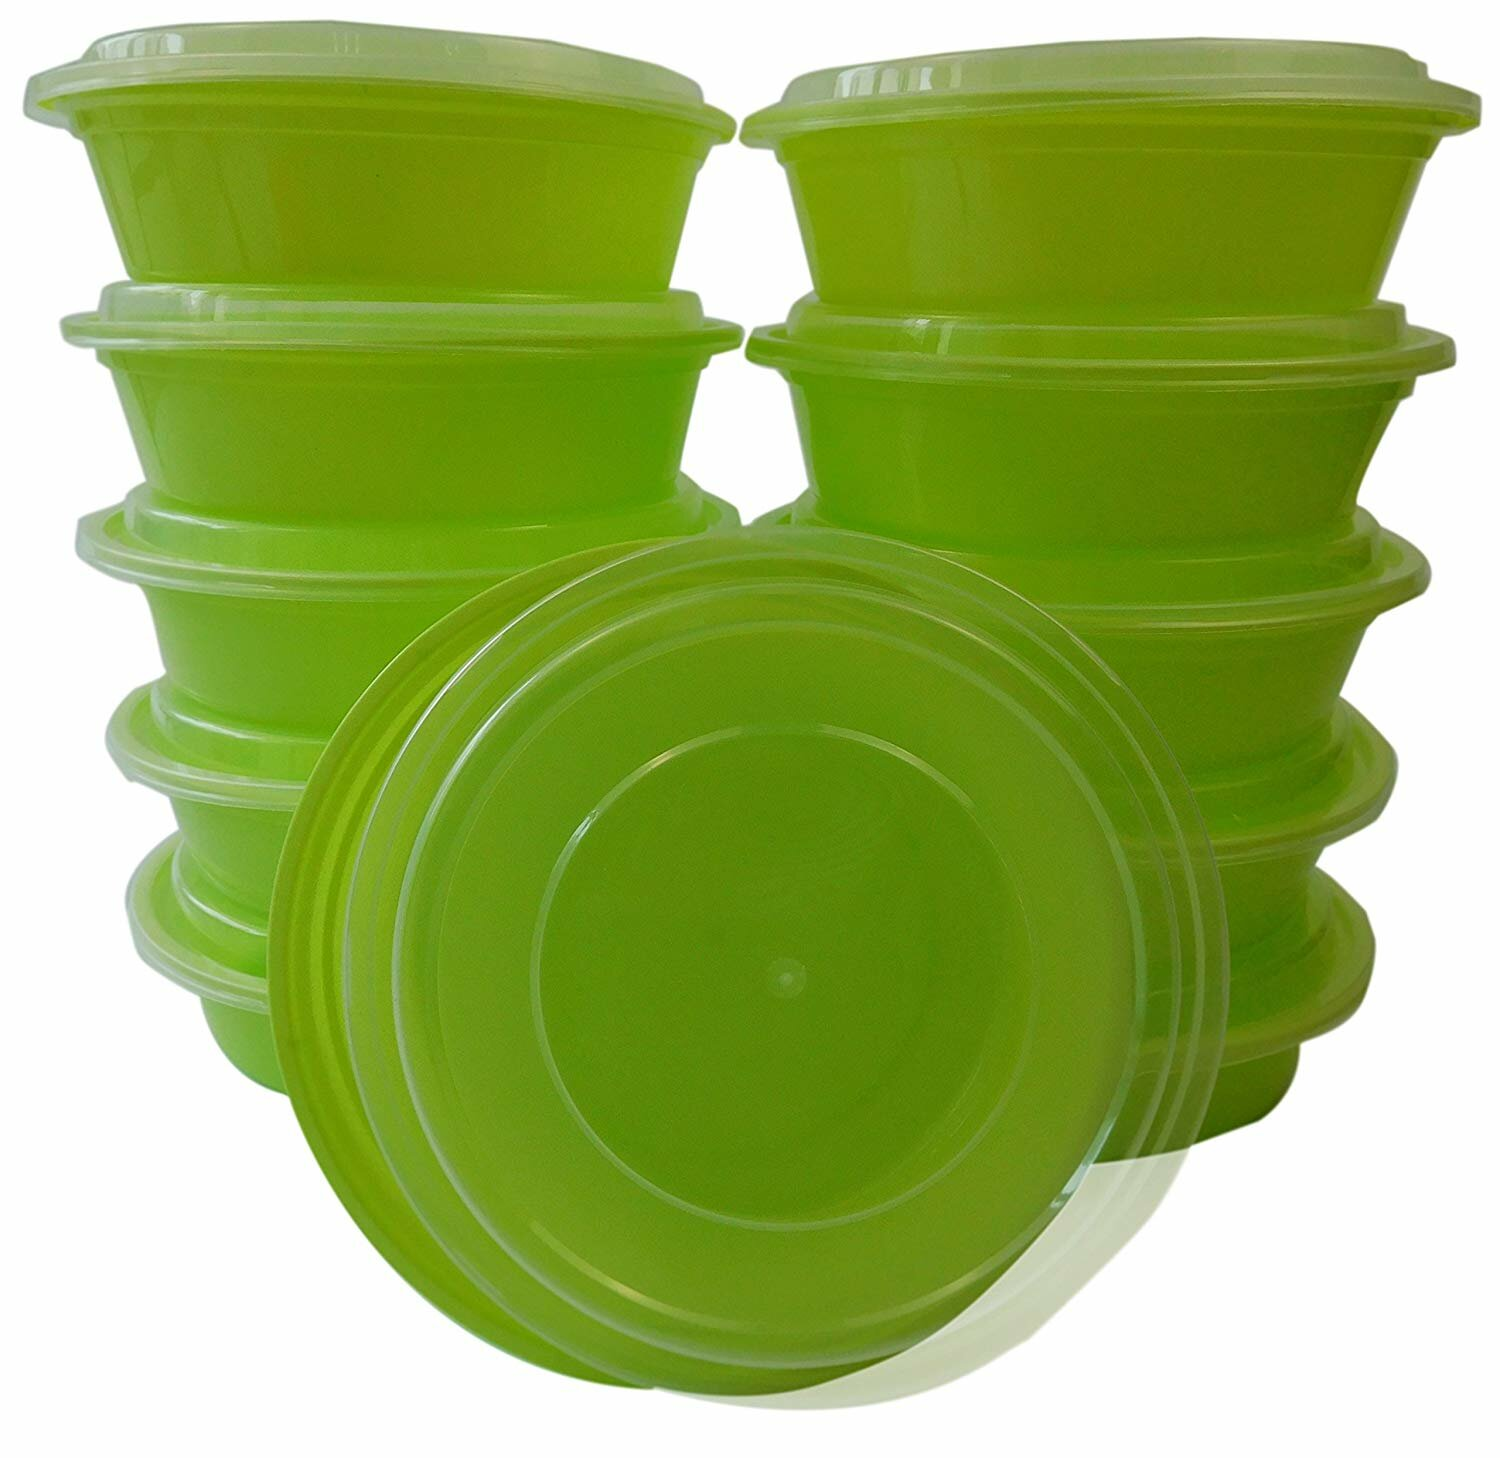 24 oz  100 Count  Round Microwaveable Plastic Meal Prep Containers with Lids